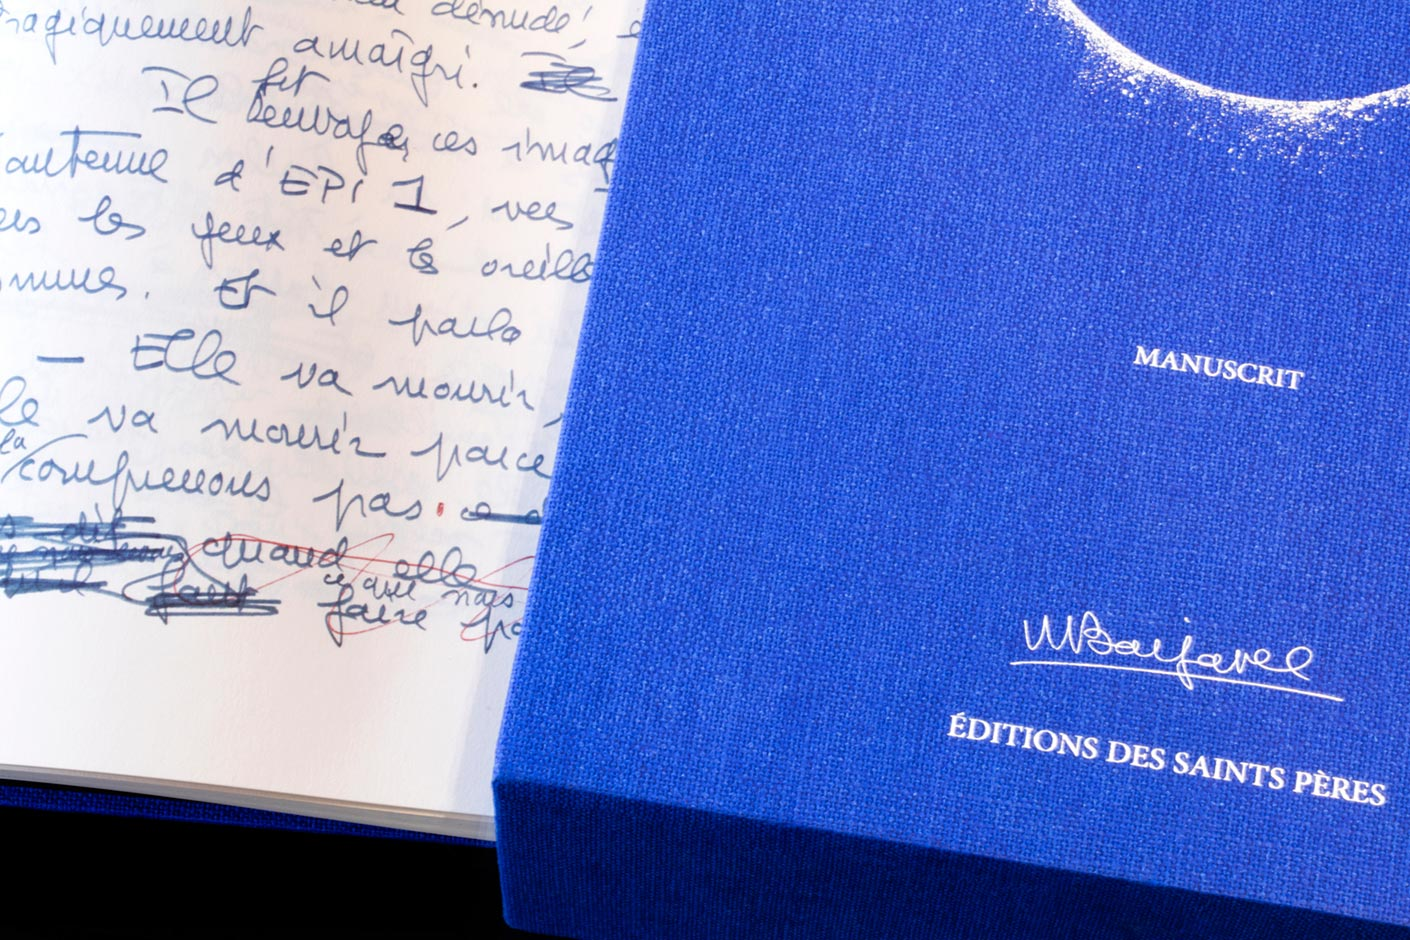 Ecriture manuscrite de Barjavel